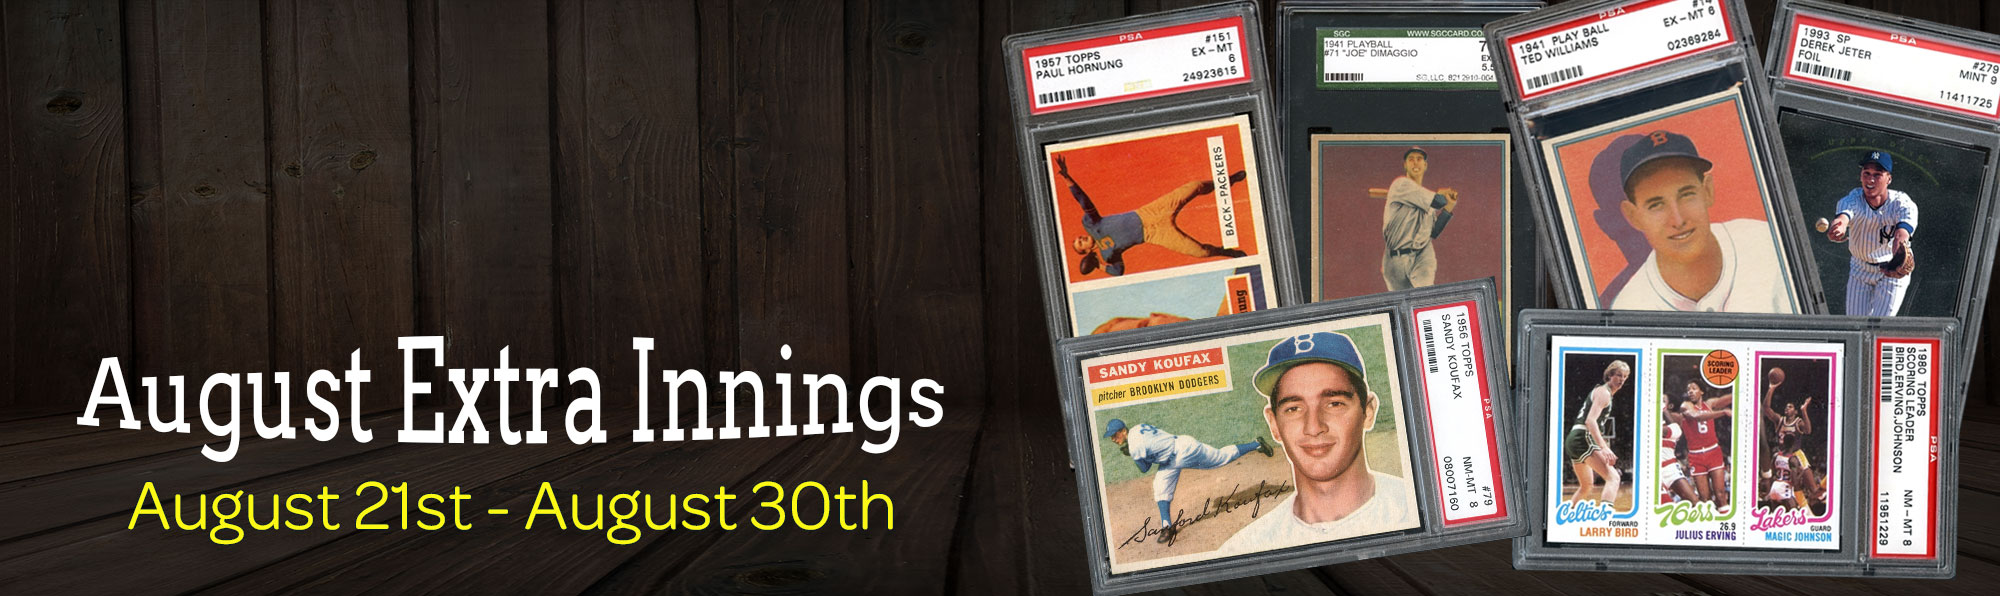 August Extra Innings August 21st - August 30th